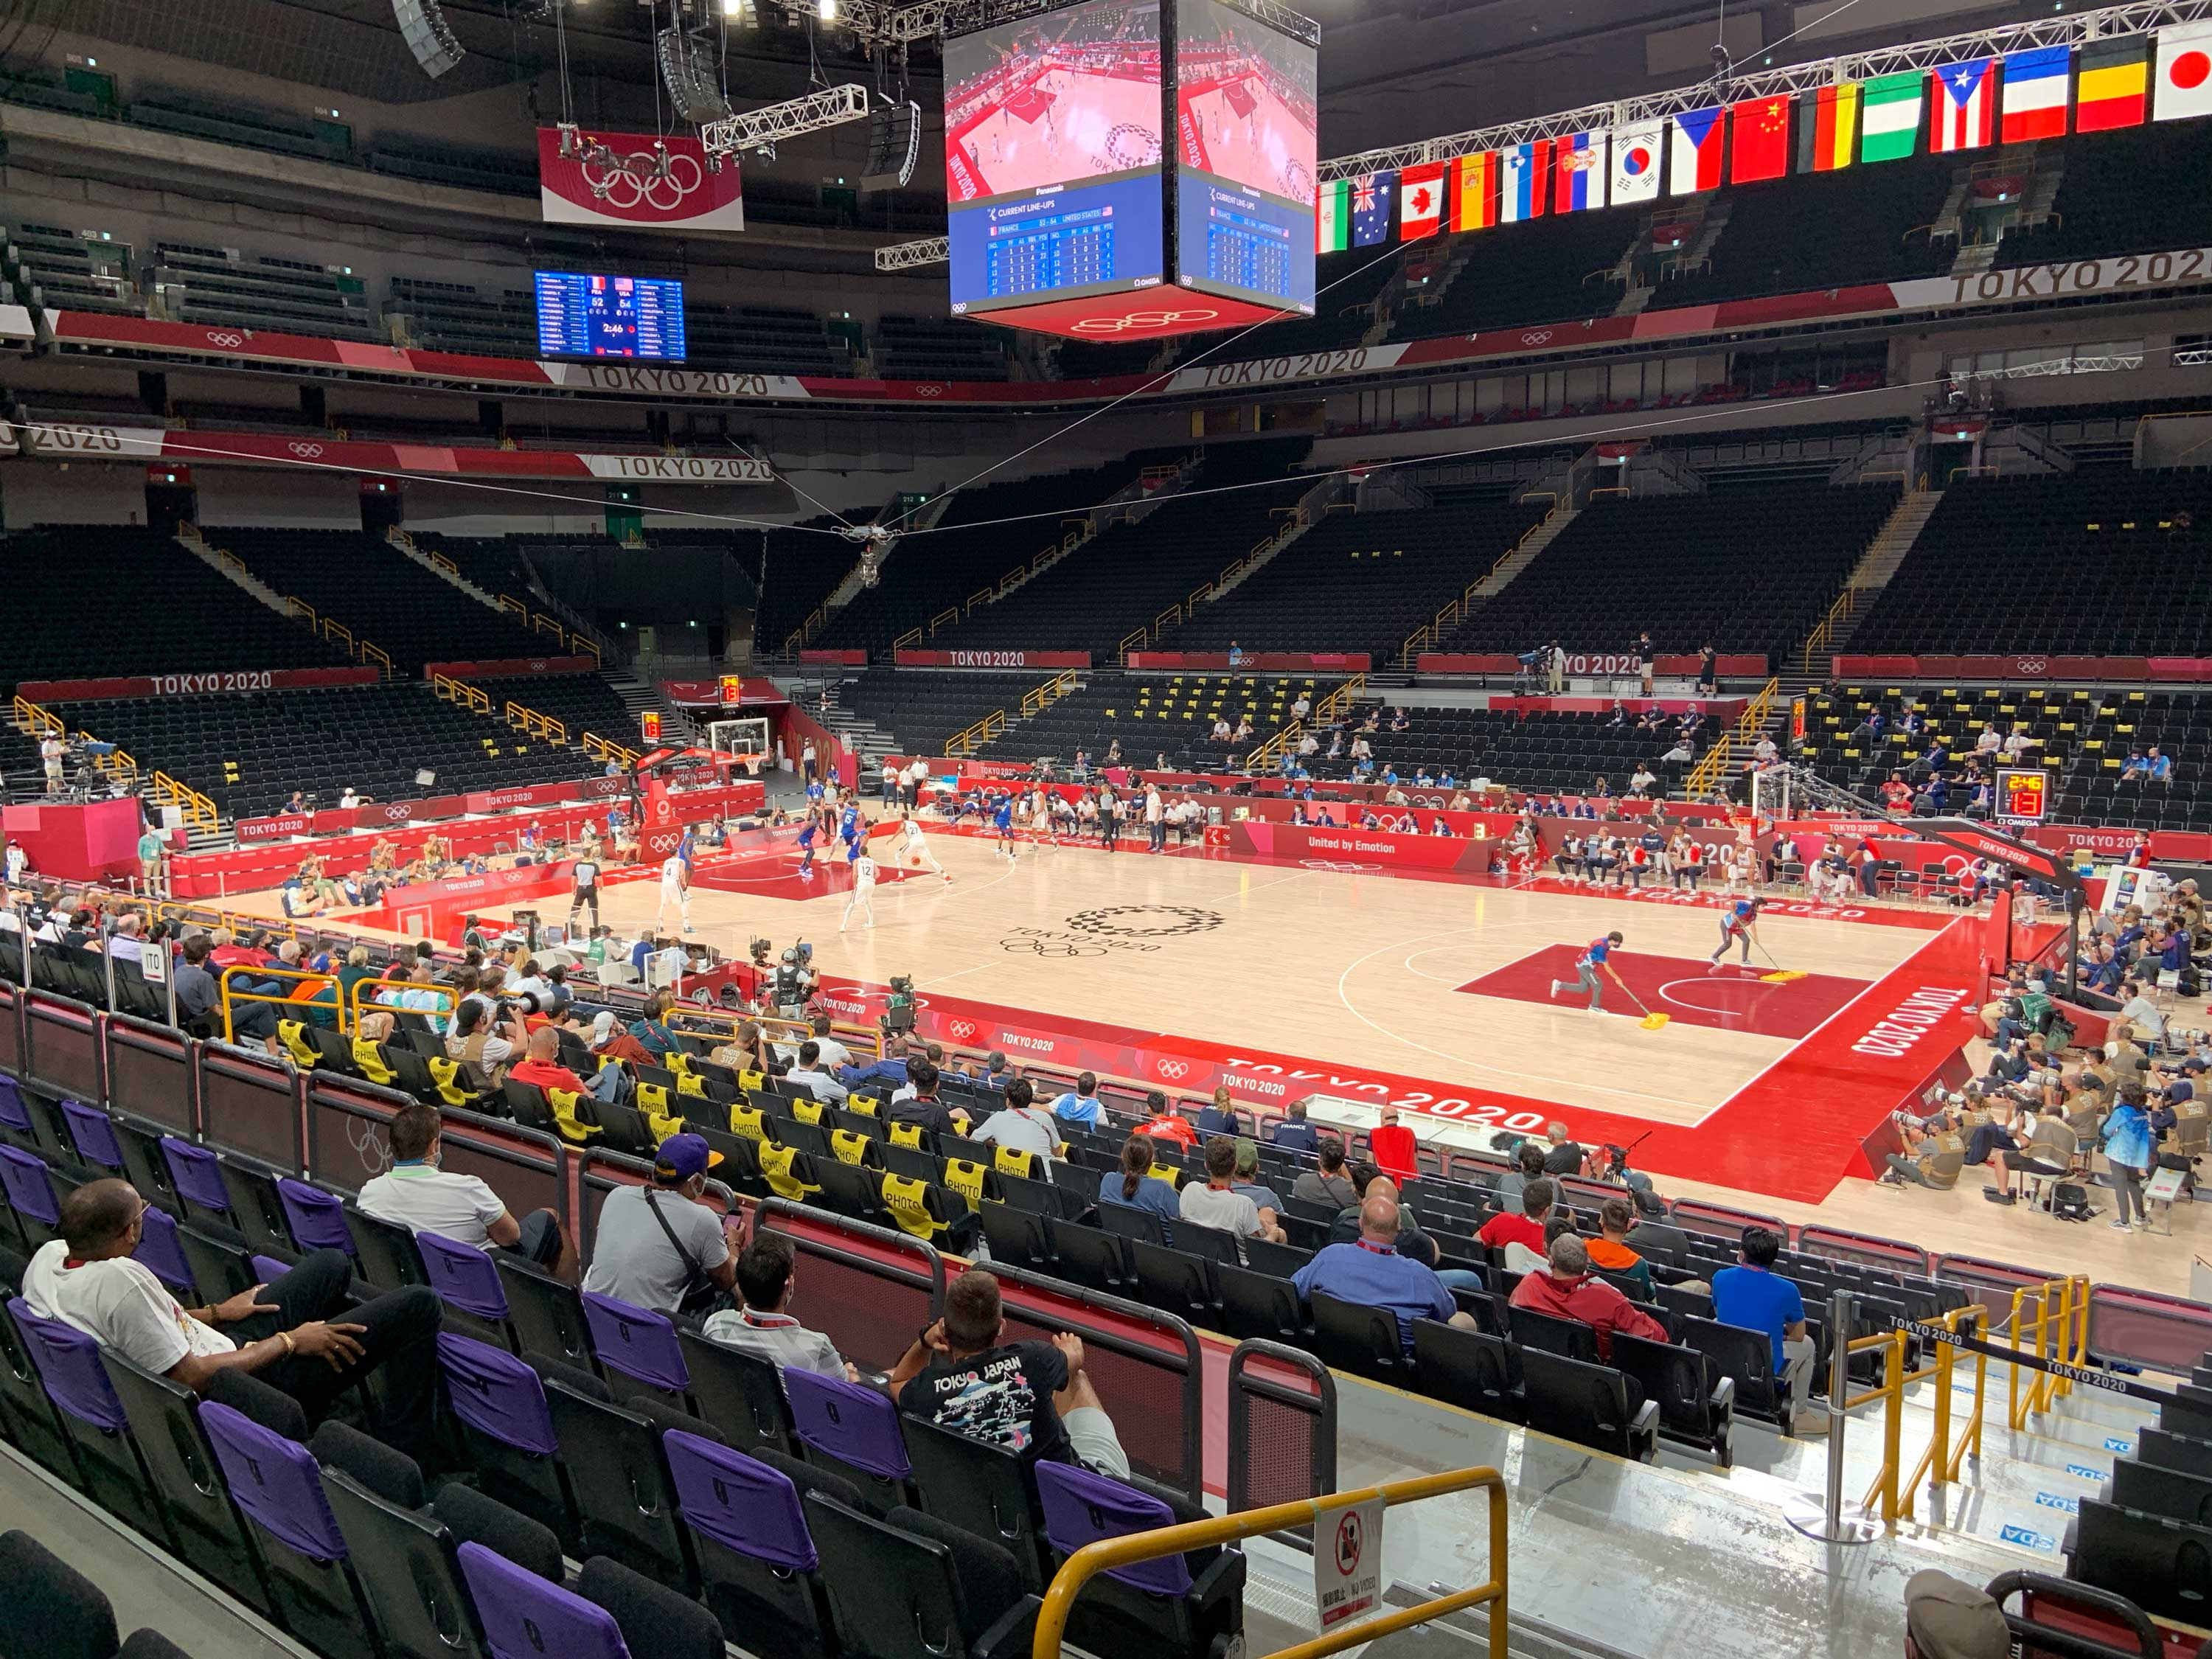 The nearly empty stadium is seen from CNN's seats at Sunday night's men's basketball game between USA and France.